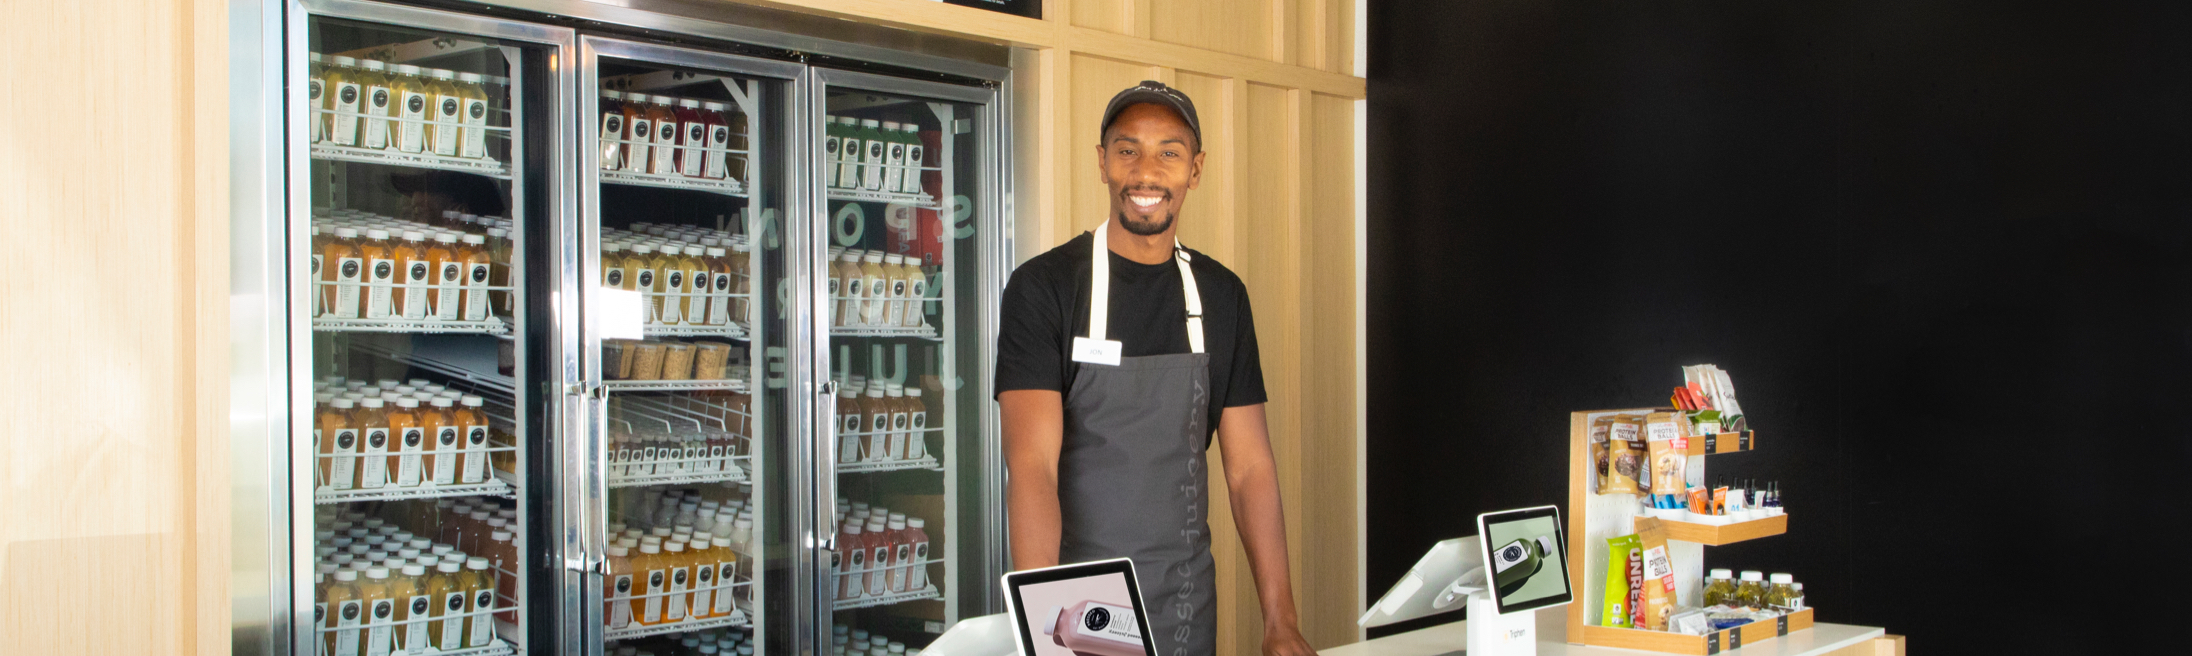 A Pressed Employee standing behind a counter.